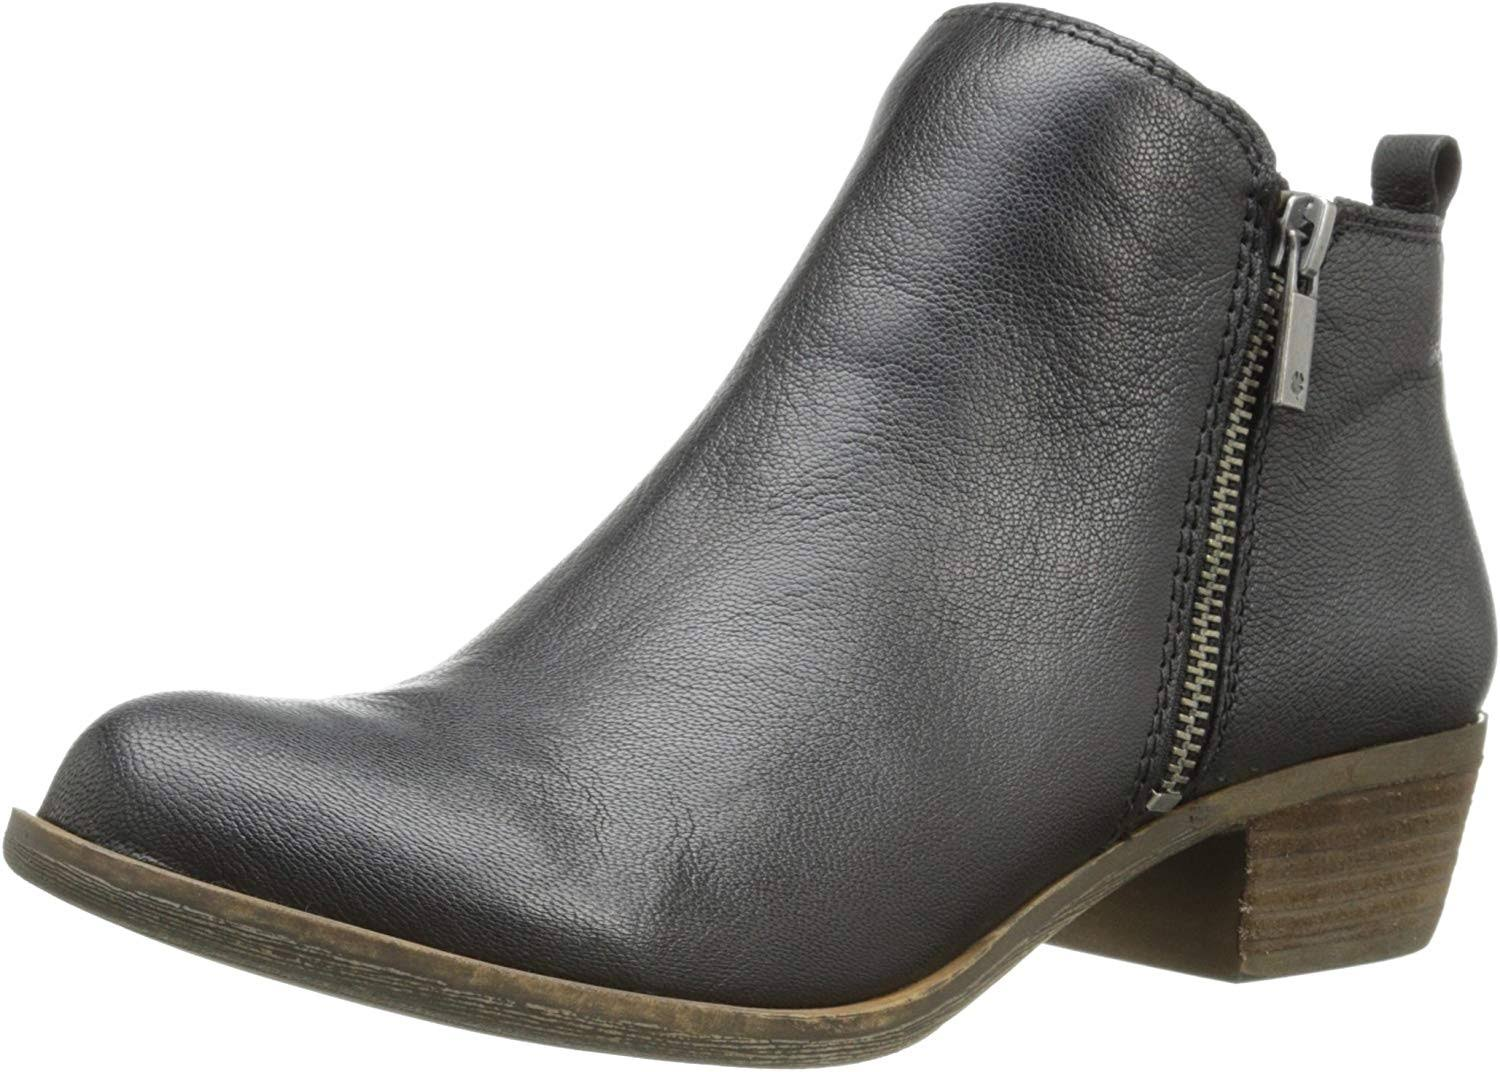 Lucky Women's Basel Ankle Bootie - Black, Size 7.5